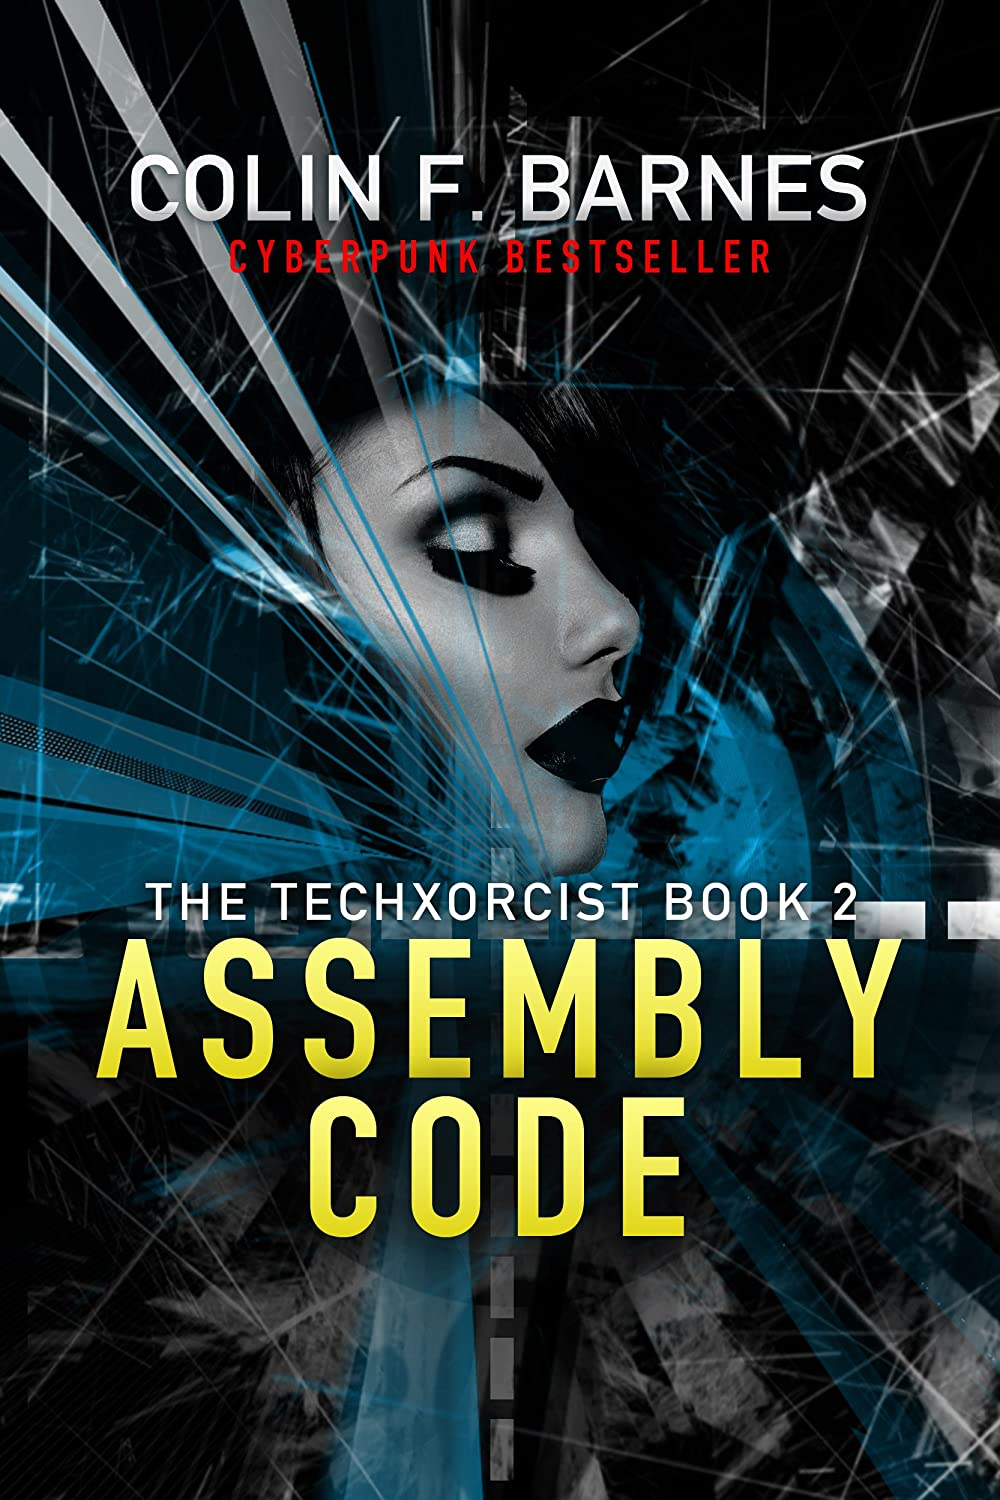 Assembly Code (Book 2 of The Techxorcist)